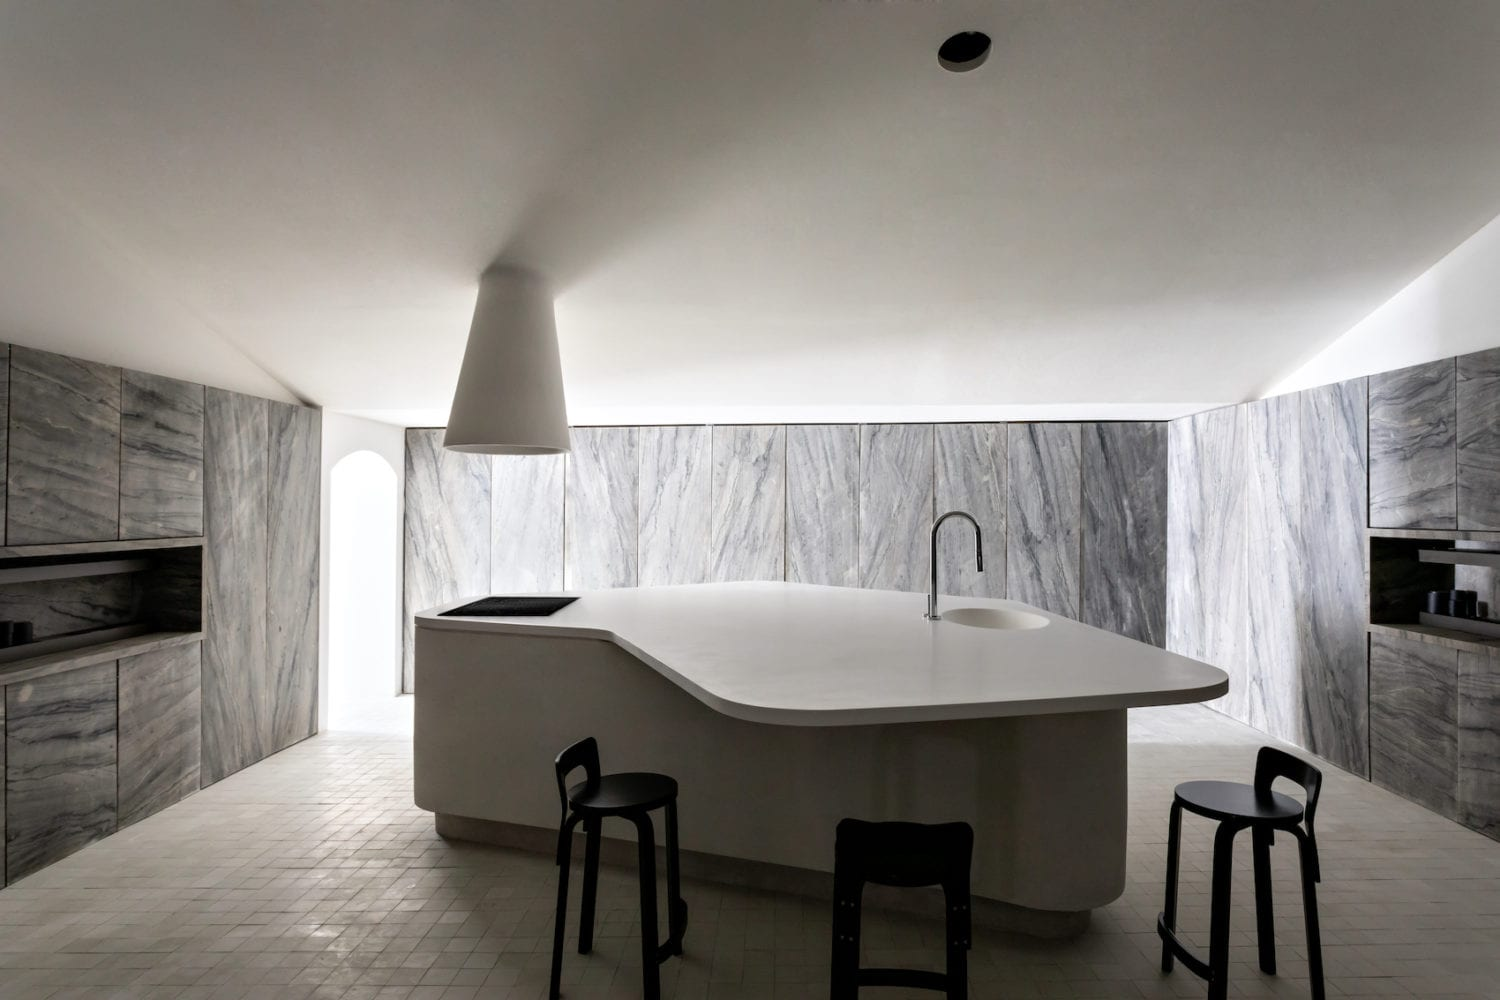 Cucina Pietra (Stone Kitchen) Concept in Sao Paulo by Felipe Hess.